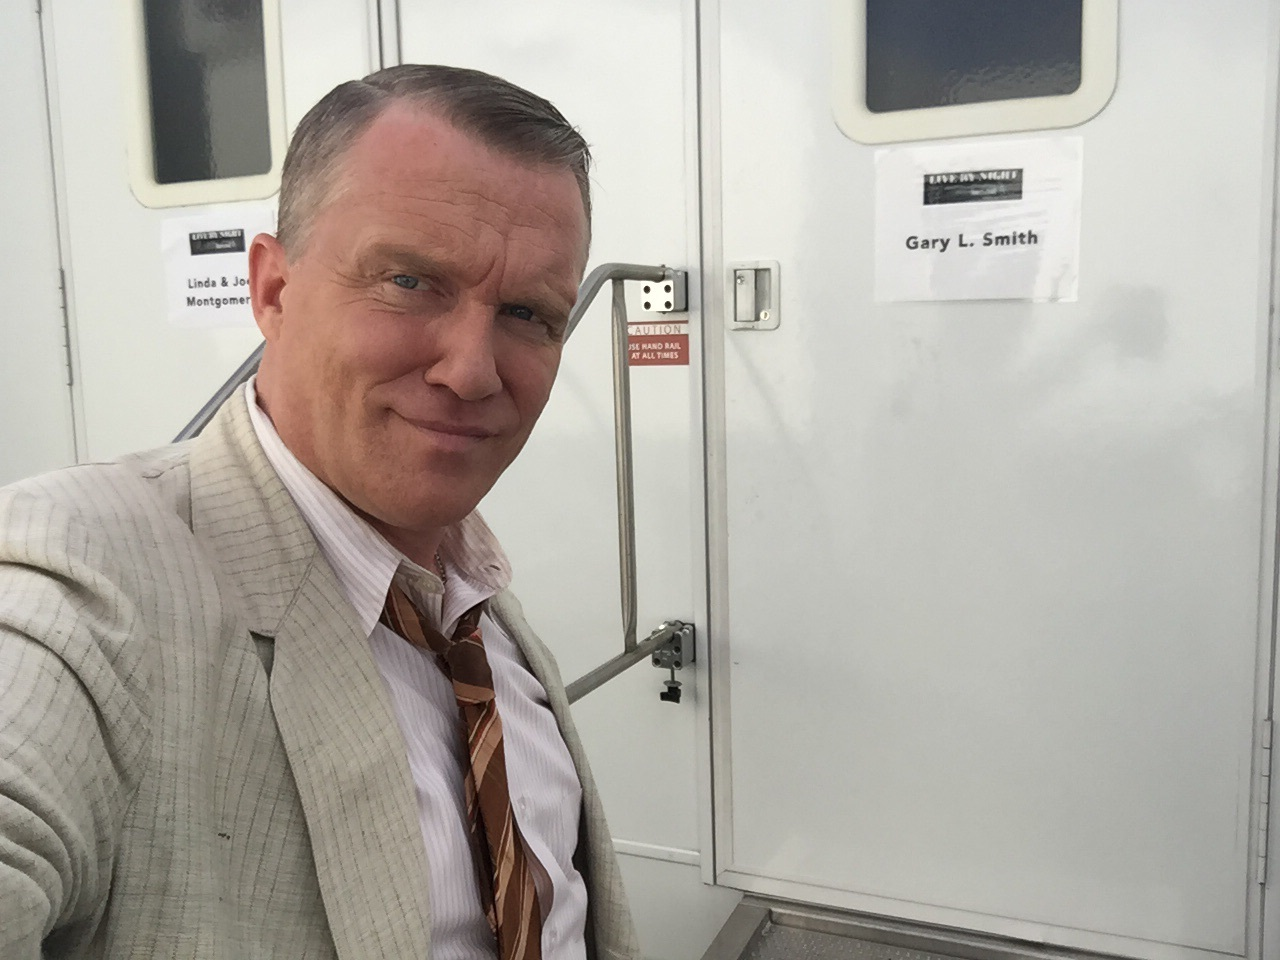 AMH as bootlegger 'Gary L Smith',  in the forthcoming Warner Brothers film, 'Live by Night.'